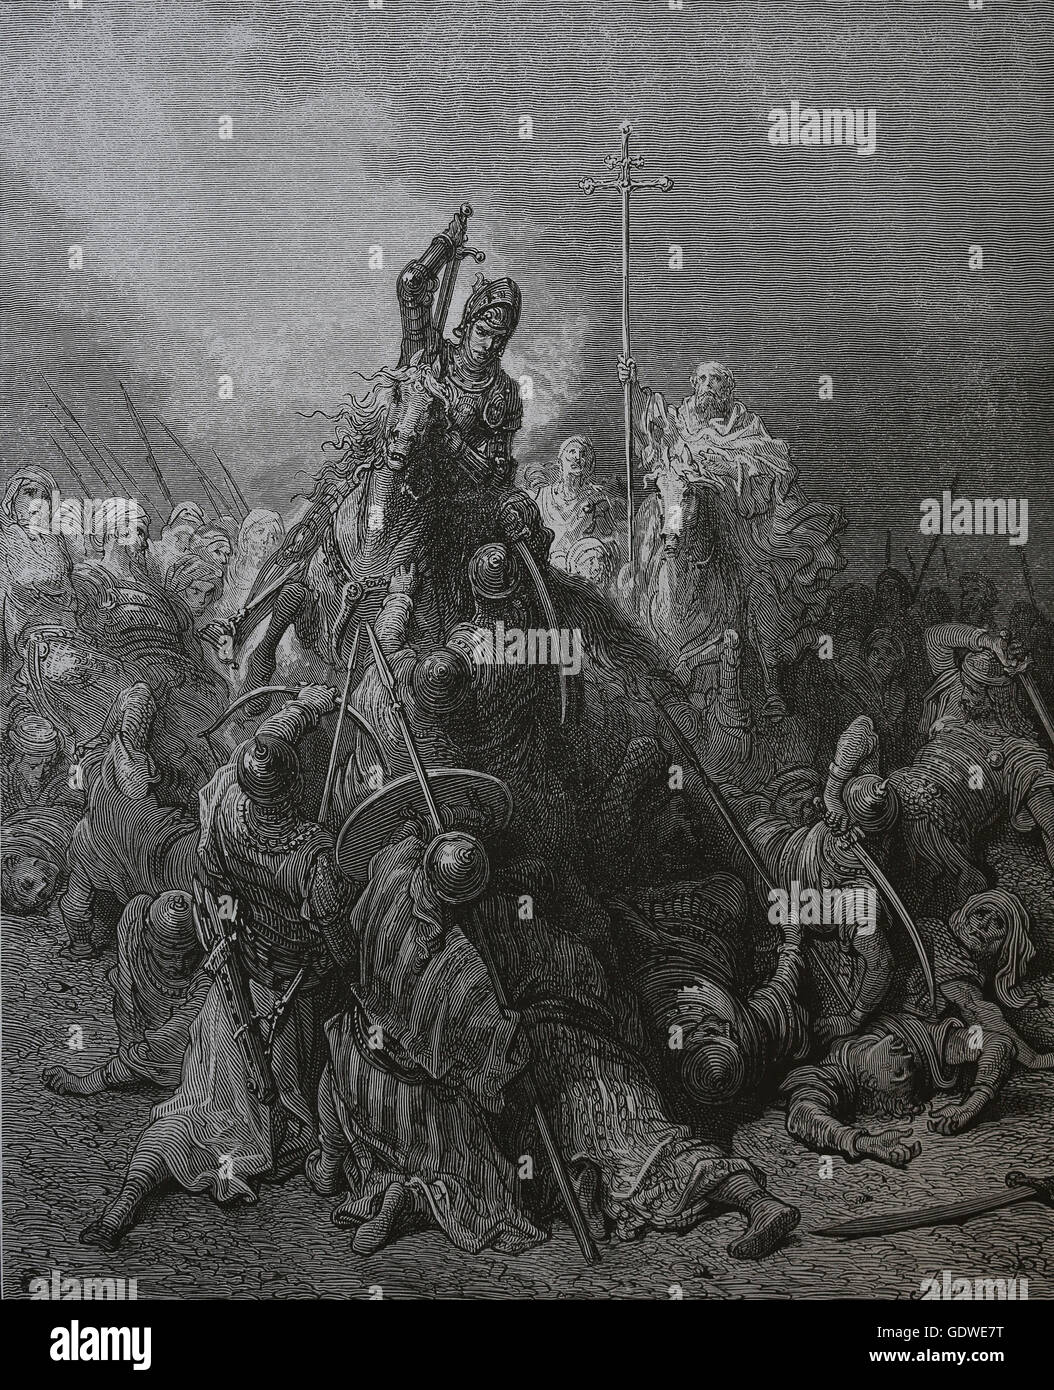 First Crusade. Siege of Antioch. 1097-1098. Battle of Antioch. Engraving by  Gustave Dore. 19th century.